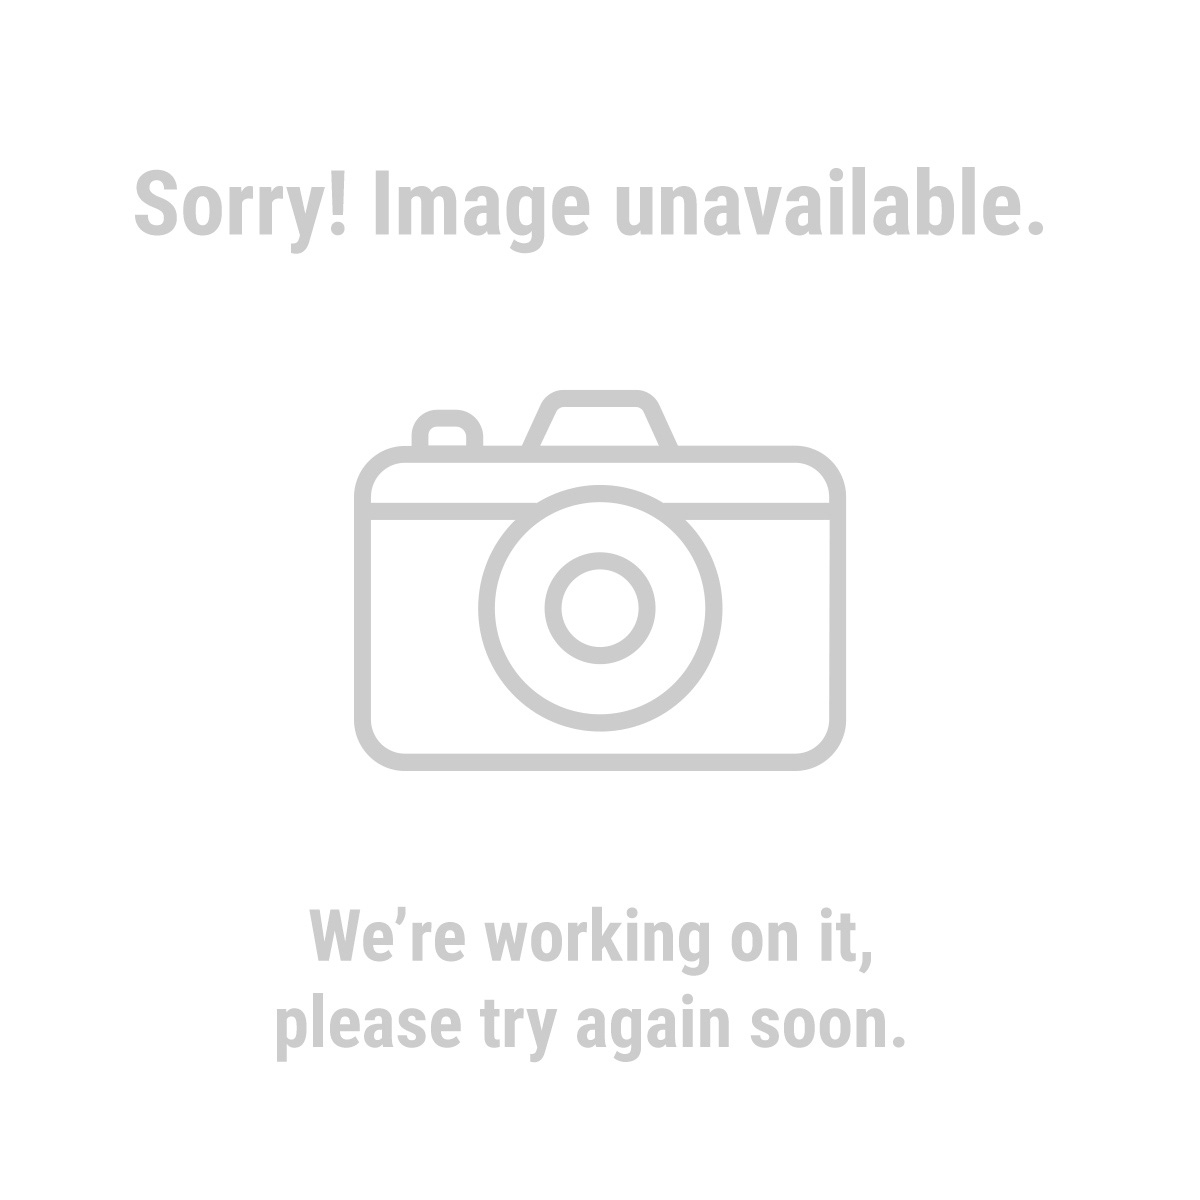 Chicago Electric Welding Systems 65818 Portable Torch Kit with Oxygen and Acetylene Tanks